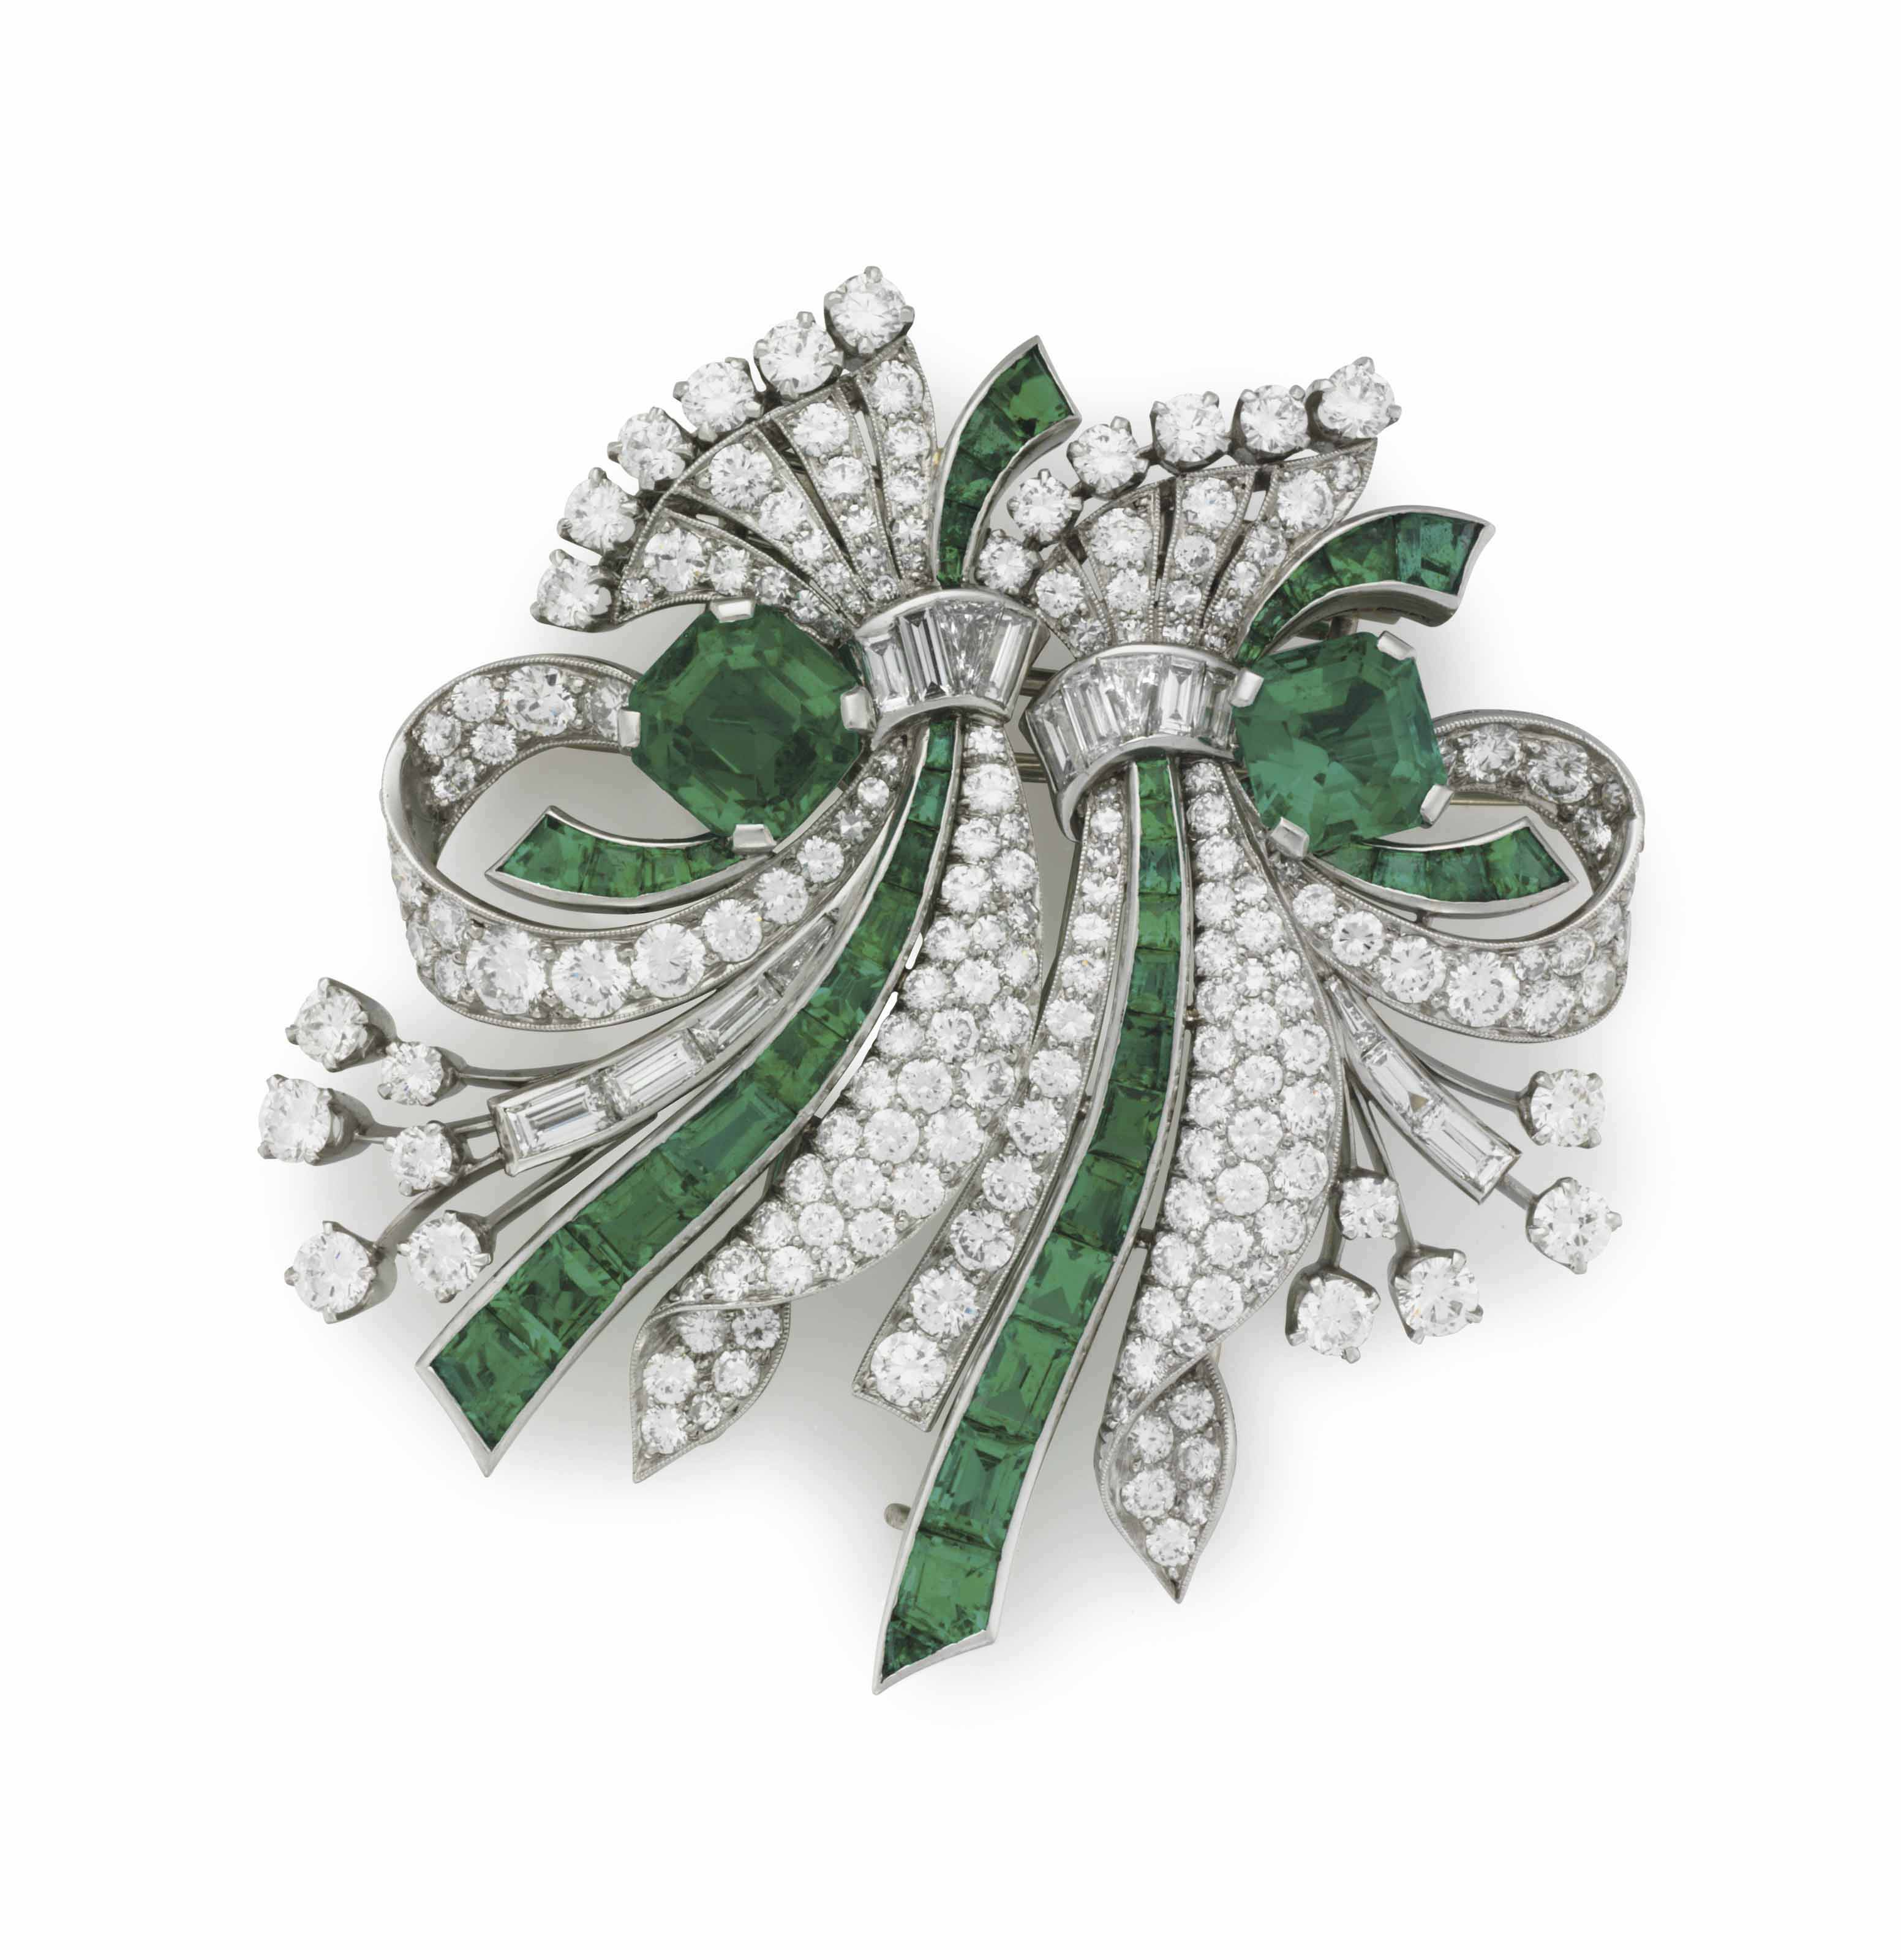 AN EMERALD AND DIAMOND DOUBLE-CLIP BROOCH, BY RAYMOND YARD